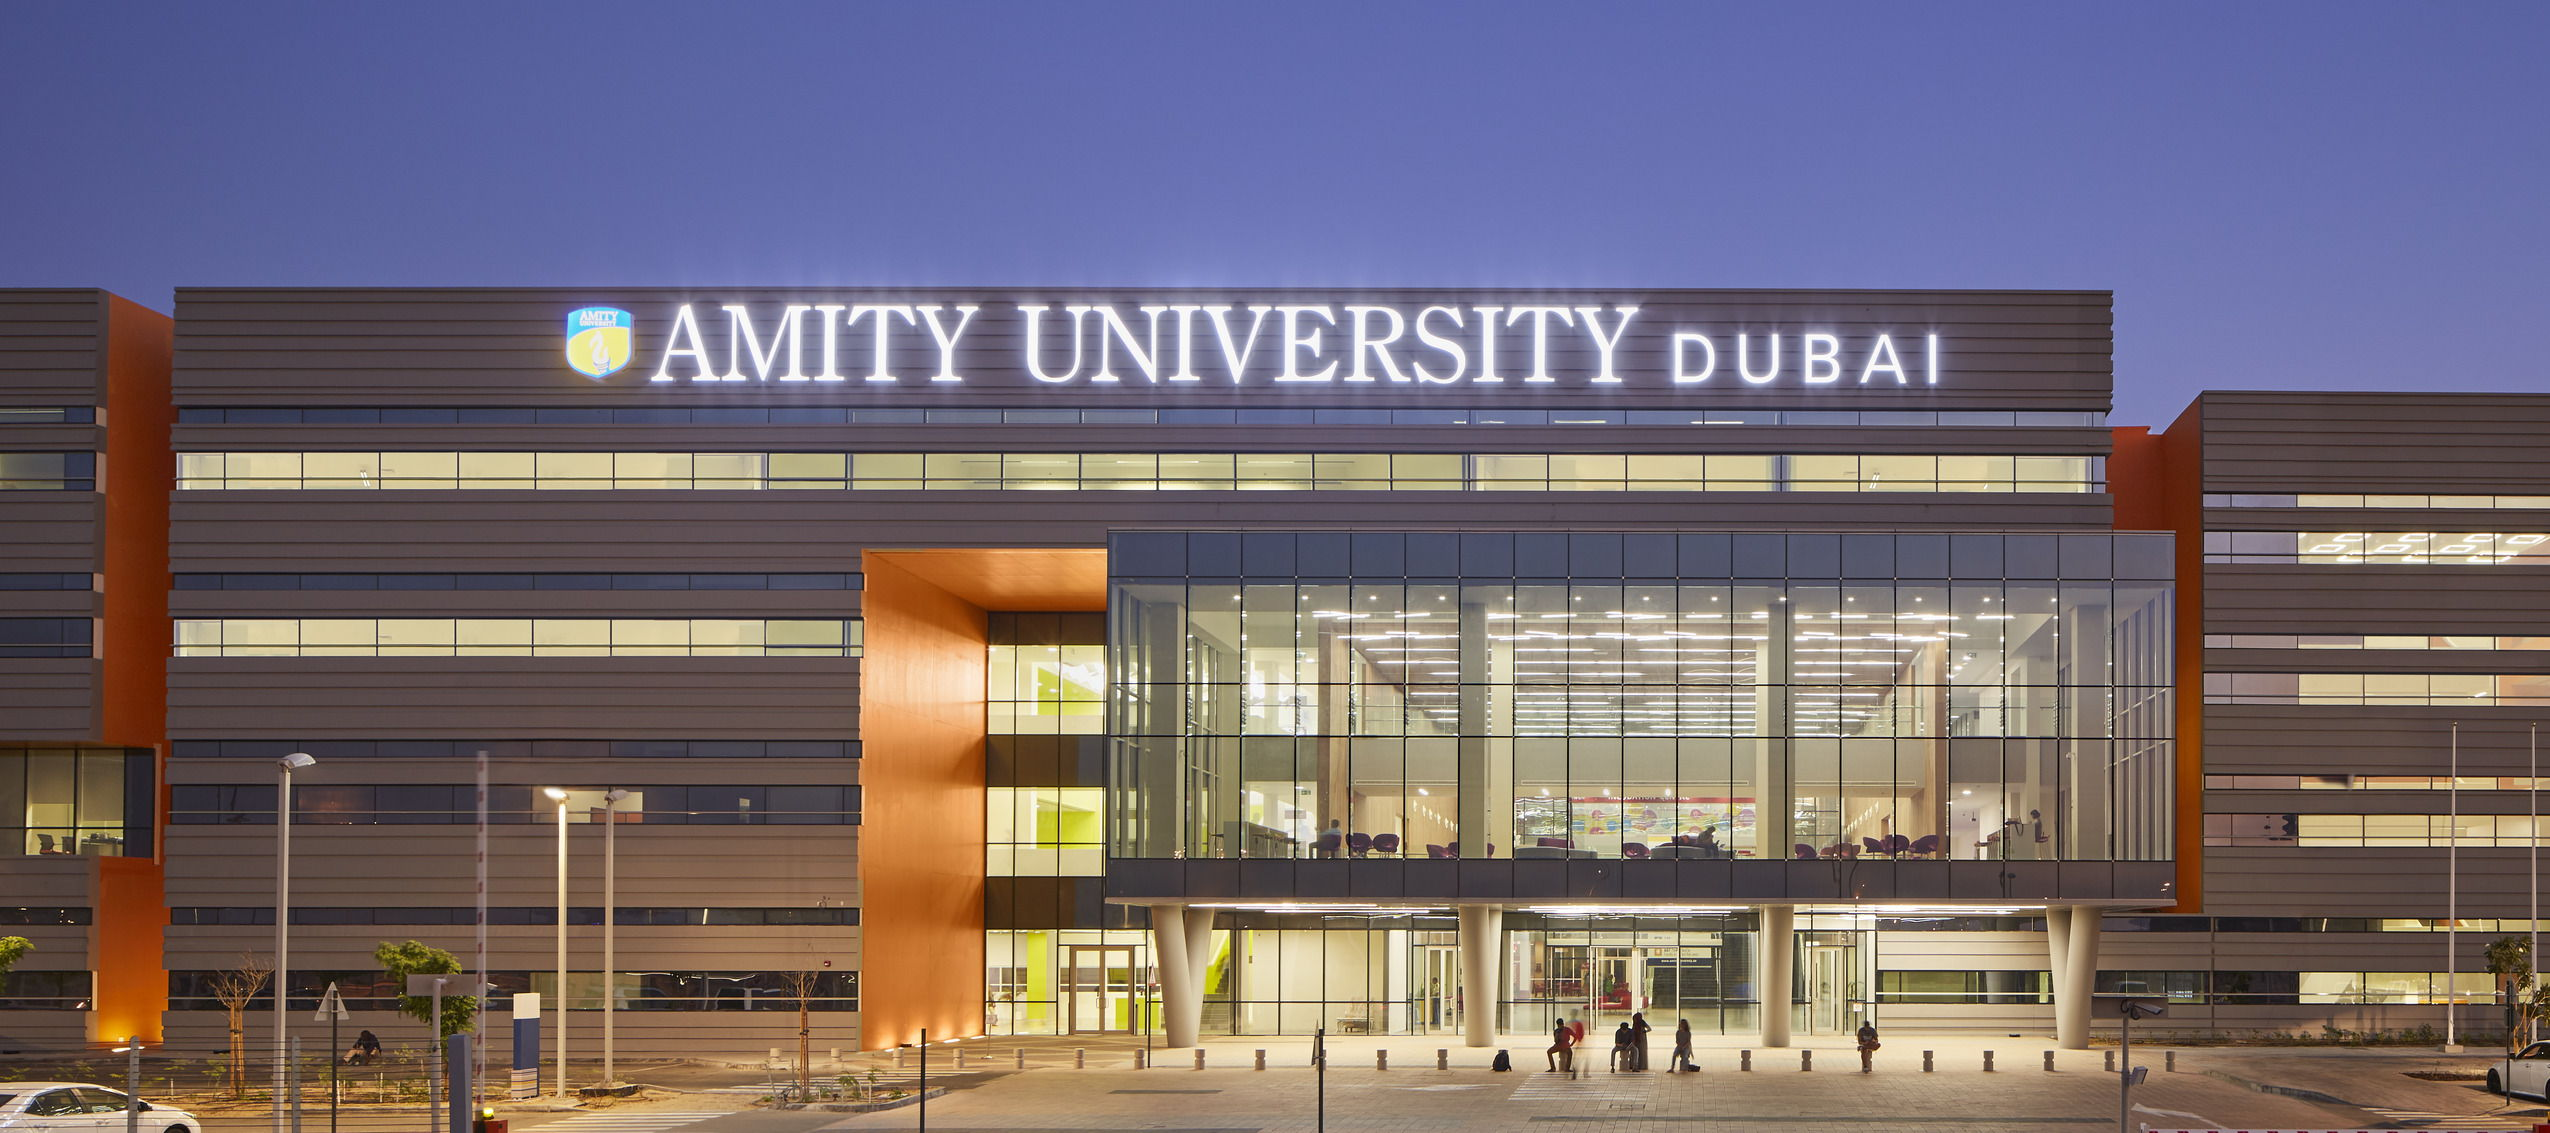 Amity University Dubai Cannondesign